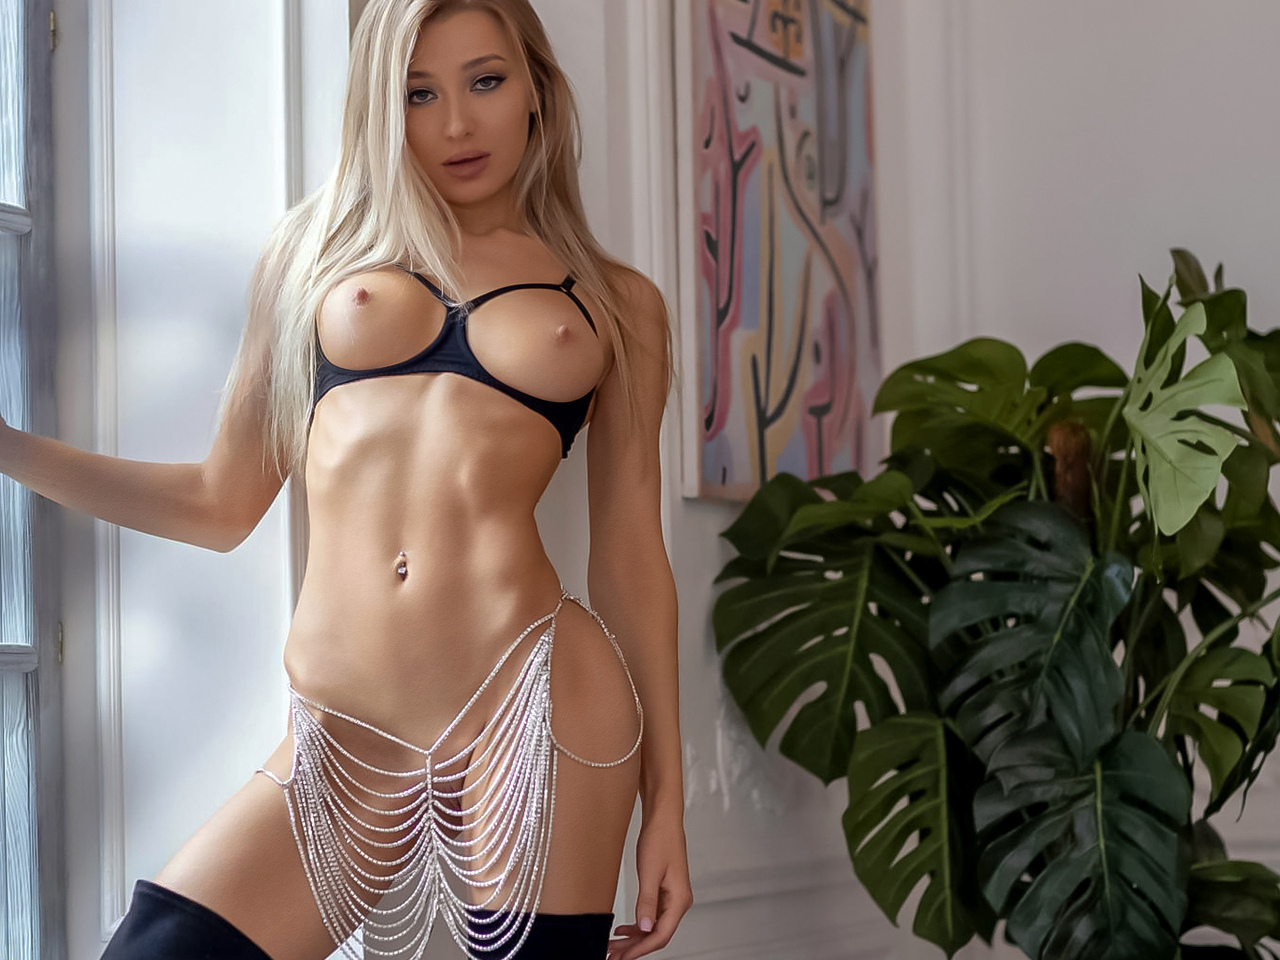 beautiful, sexy, blonde girl, angelika lesik